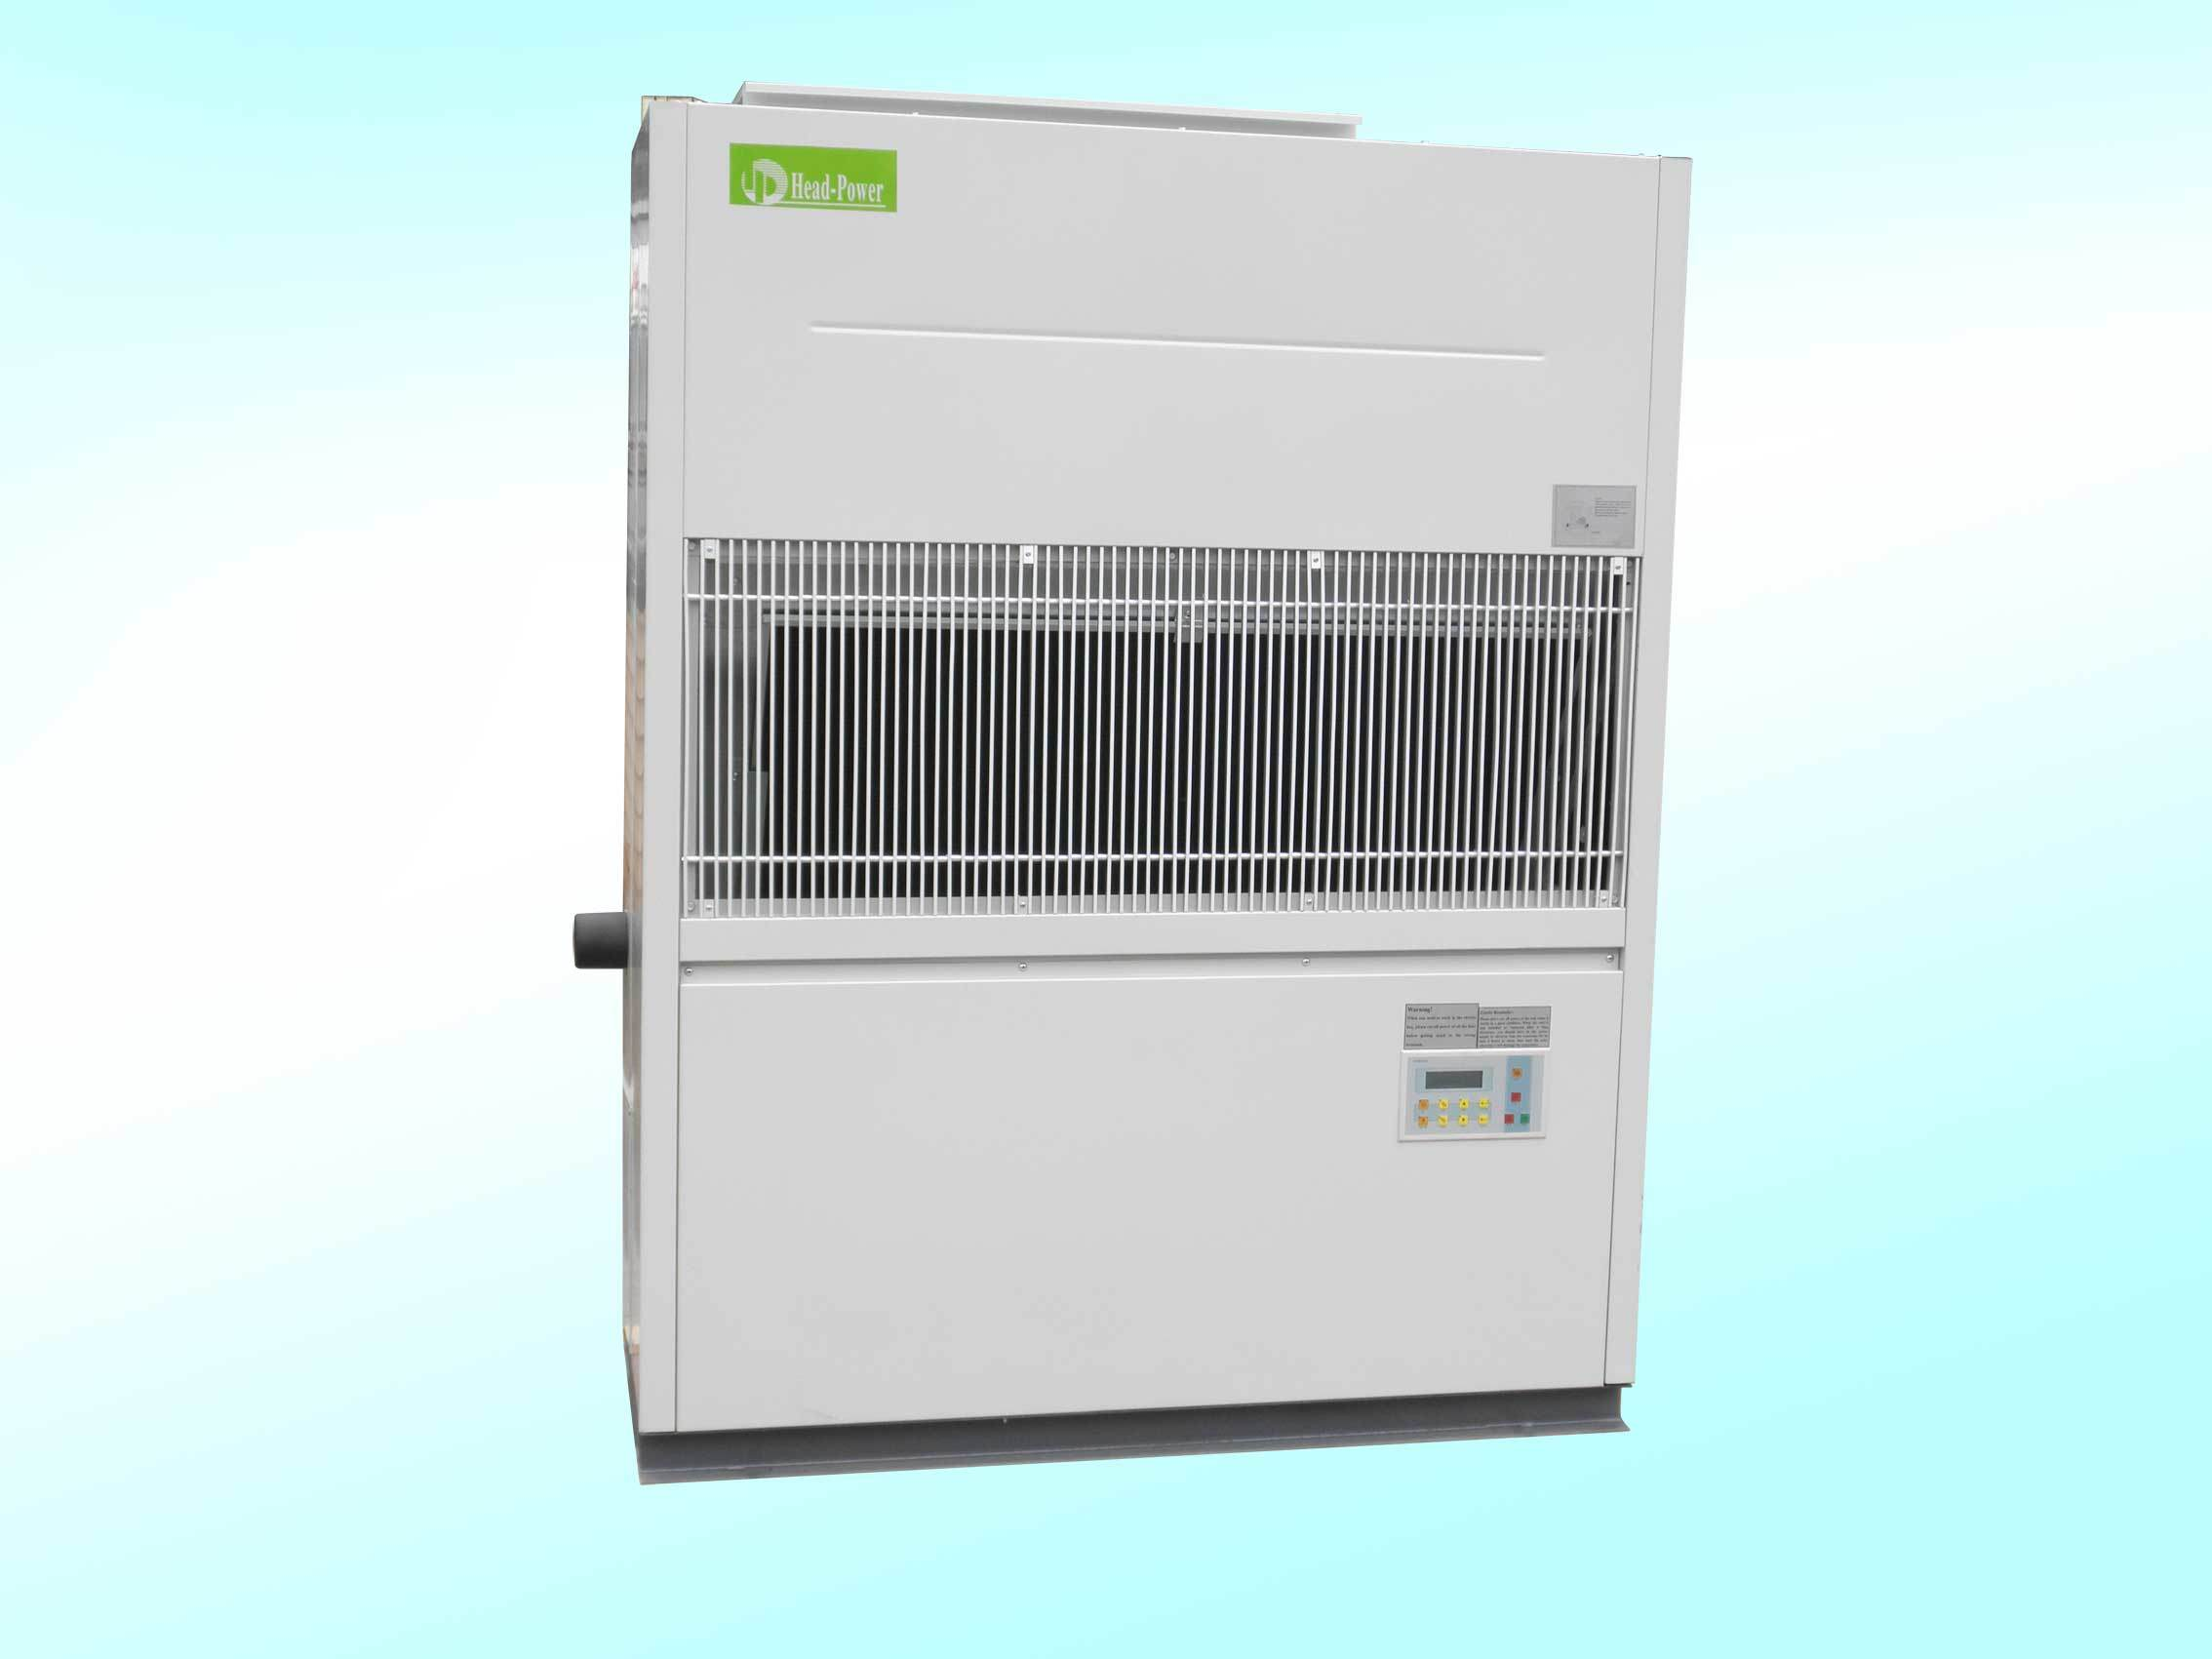 #6EA02B China Water Cooled Packaged Conditioner (HWL) China Air  Best 11043 Asian Air Conditioner photos with 2268x1701 px on helpvideos.info - Air Conditioners, Air Coolers and more